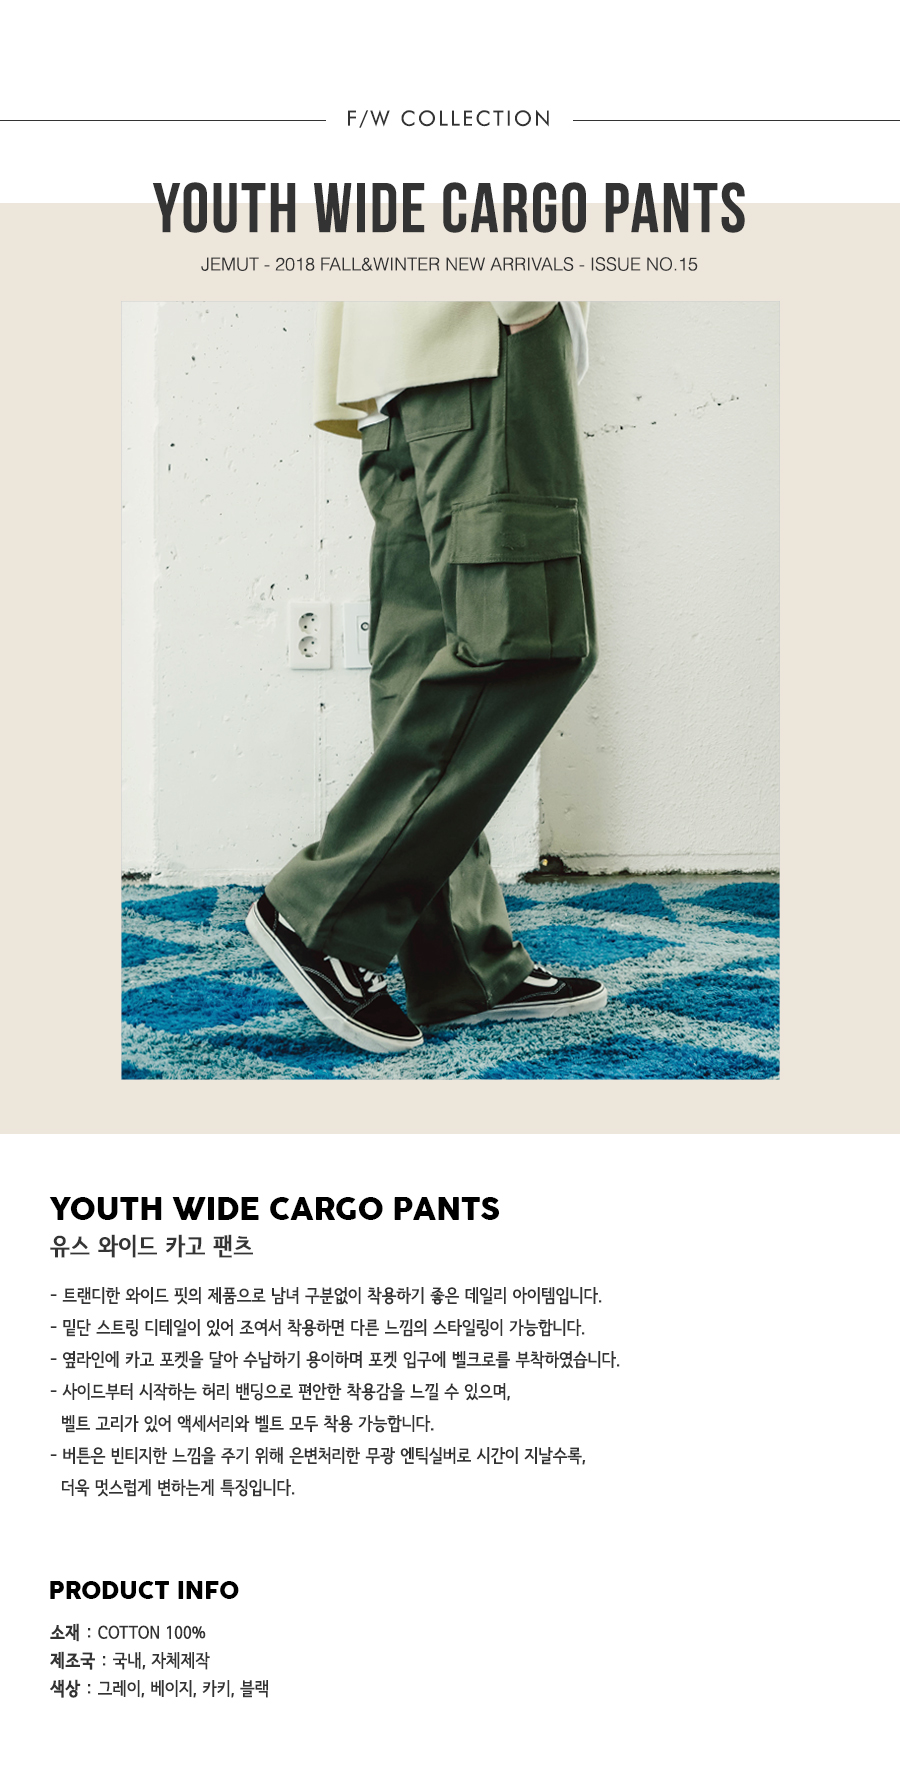 20181017_youth_wide_cargo_pants_title_yh.jpg